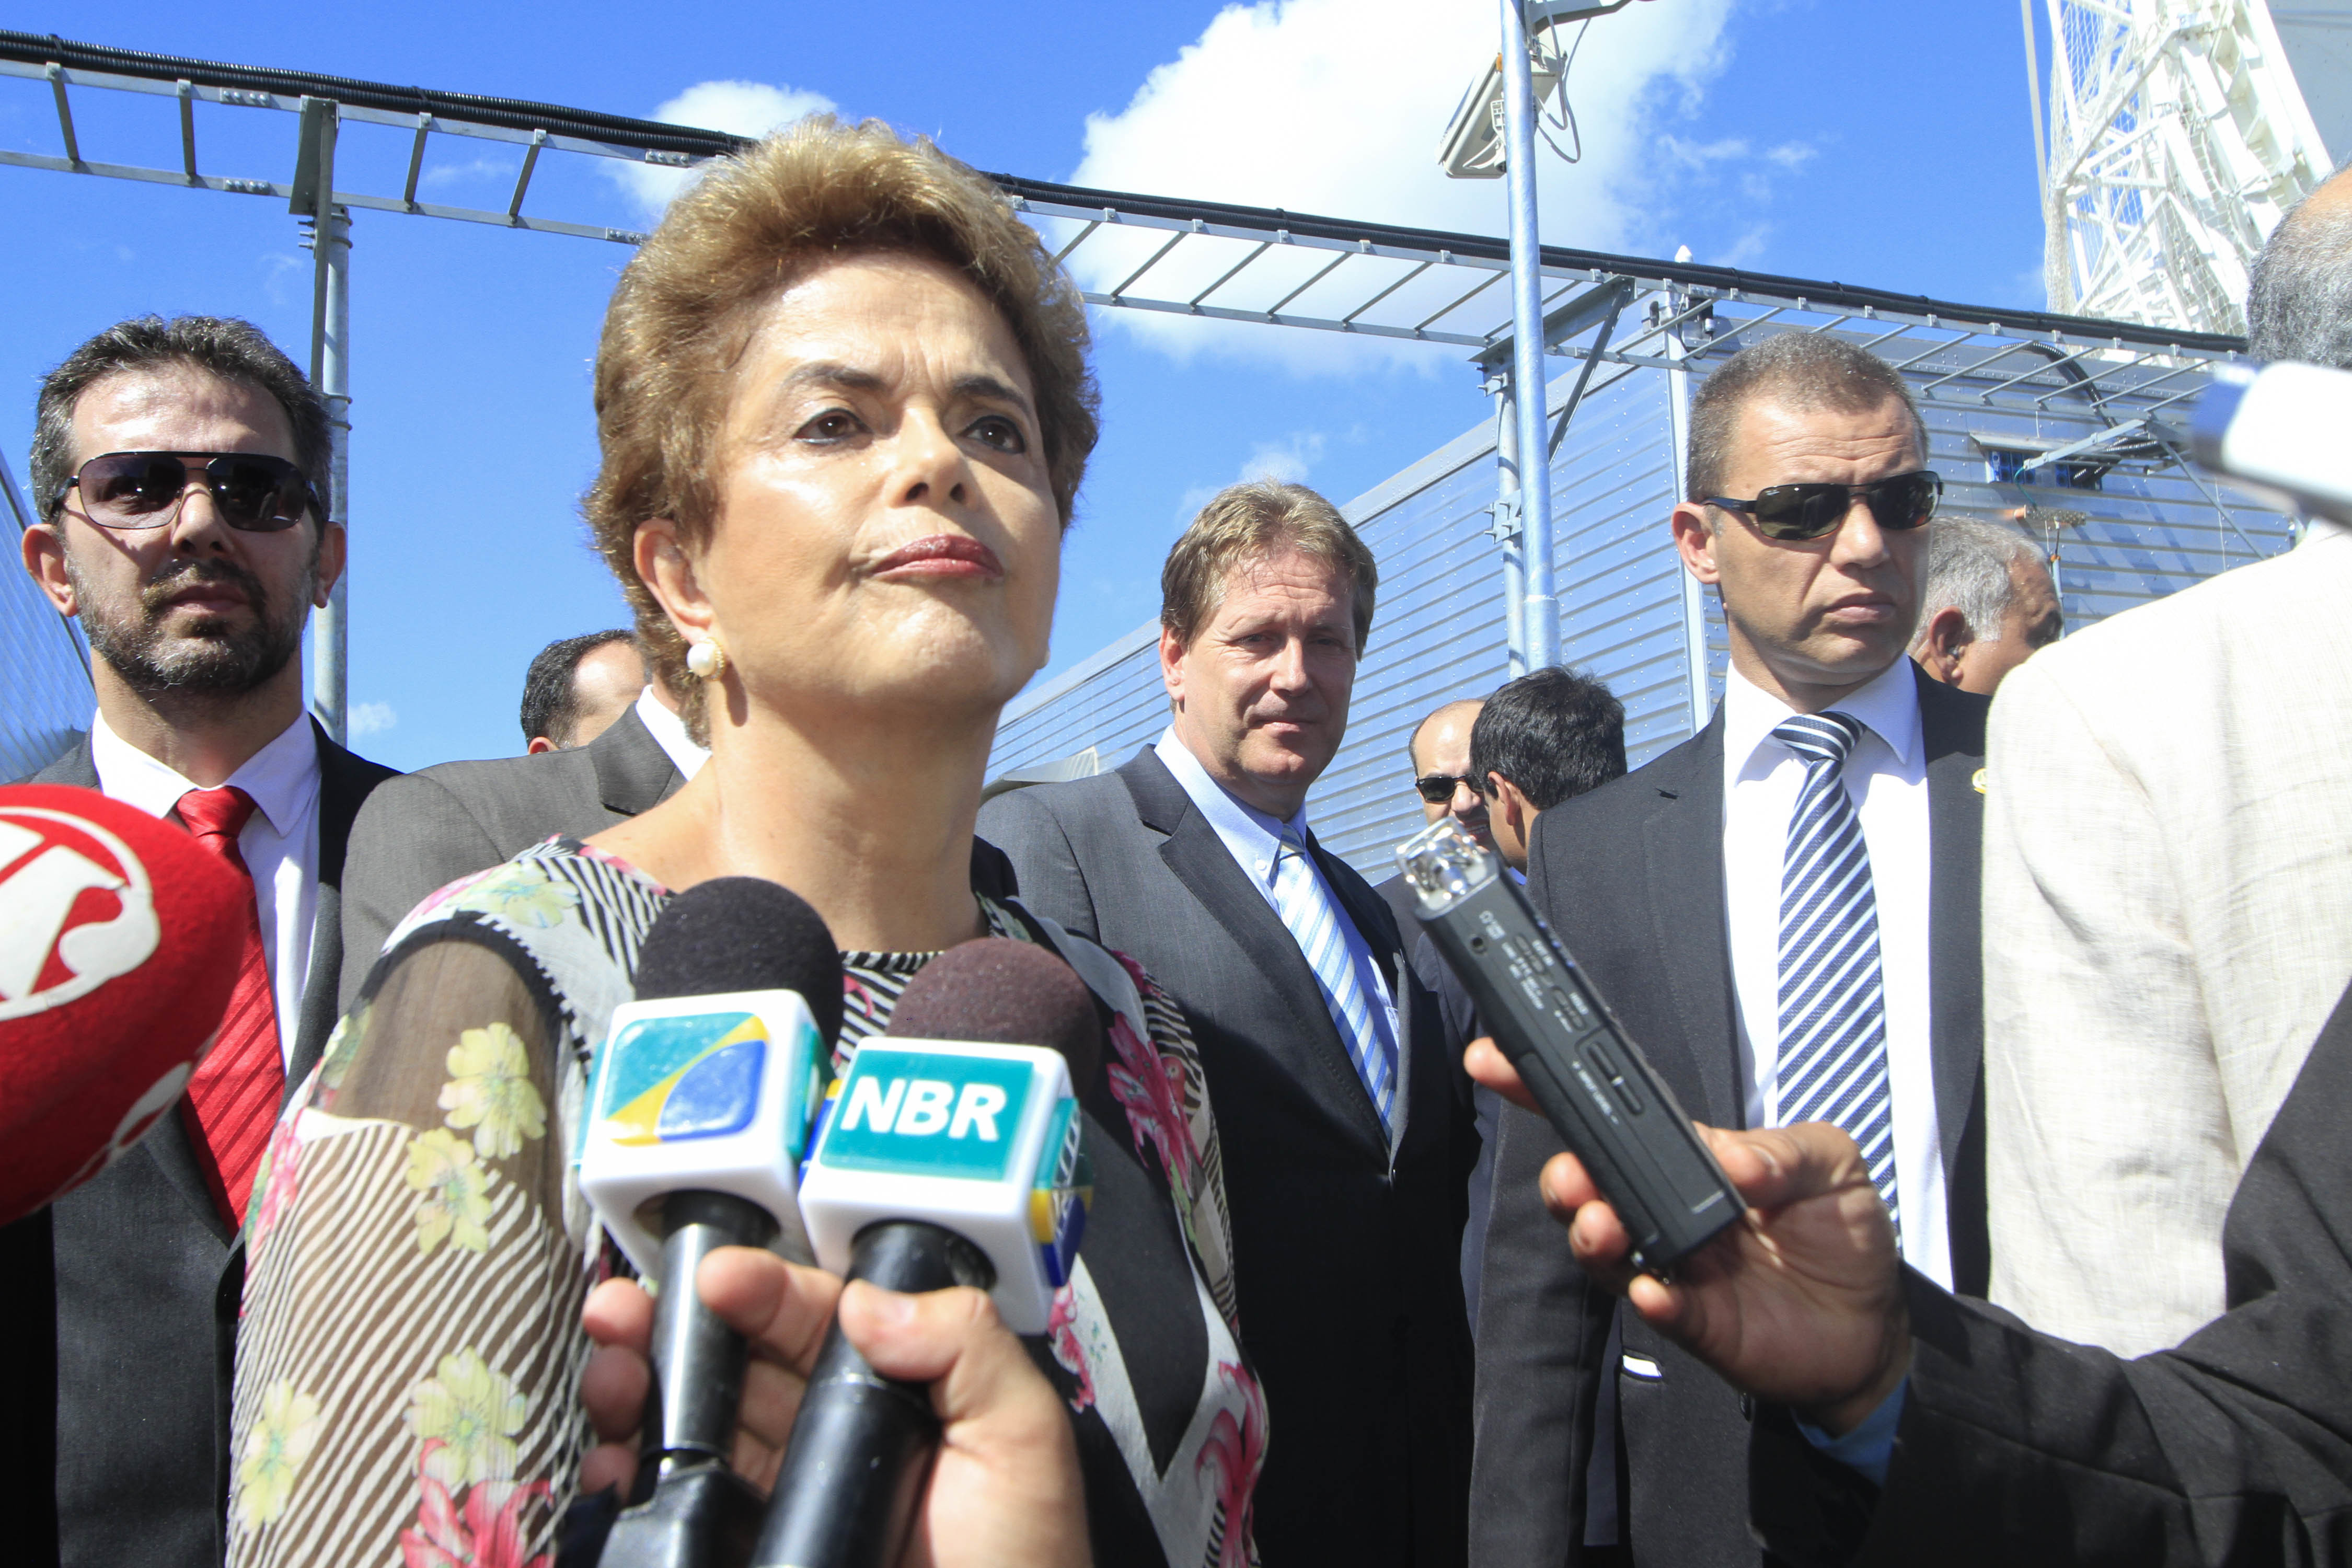 President of Brazil Dilma Rousseff talks with journalists  during a visit to the site of the infrastructure project for the Geostationary Defense and Strategic Communications Satellite of the Air Force's Space Operations Center on March 23, 2016 in Lago Sul, Brazil.